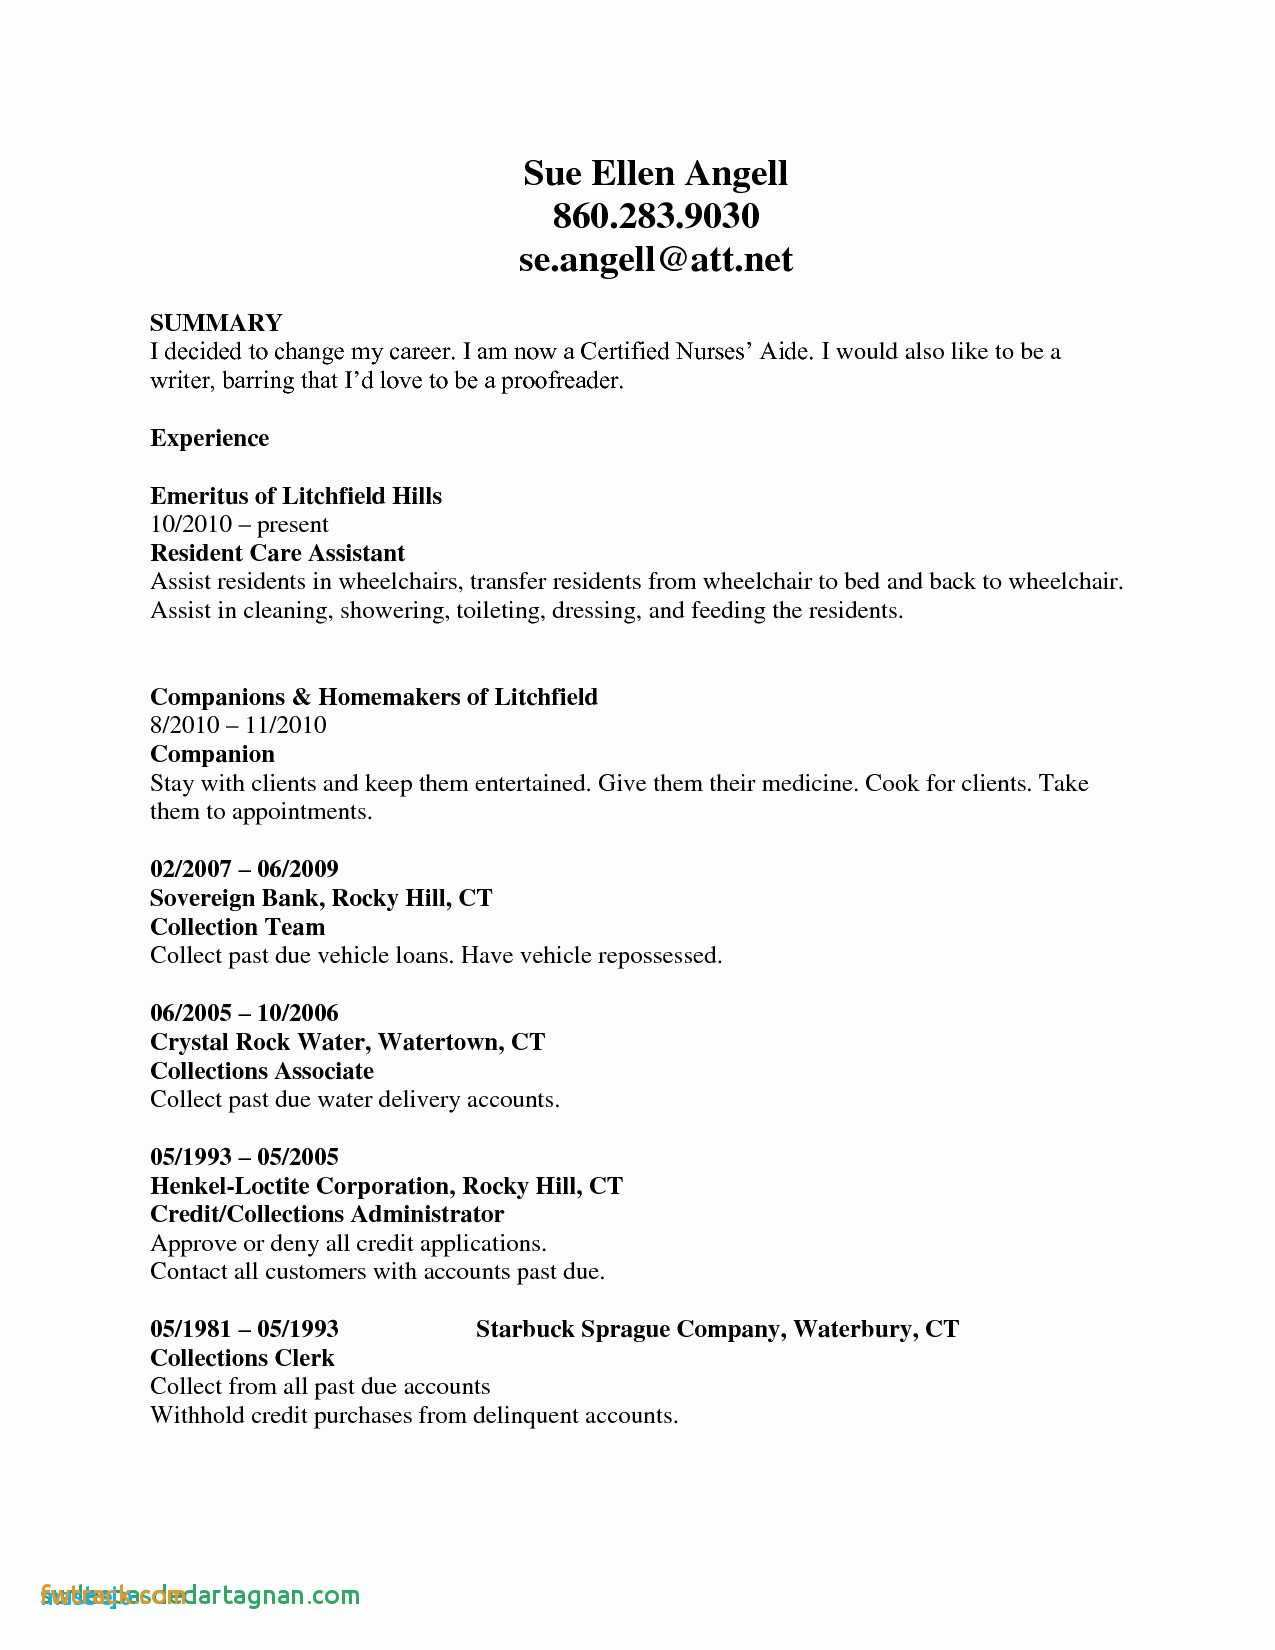 Summary for Resume with No Experience - Resume Templates No Experience Fwtrack Fwtrack